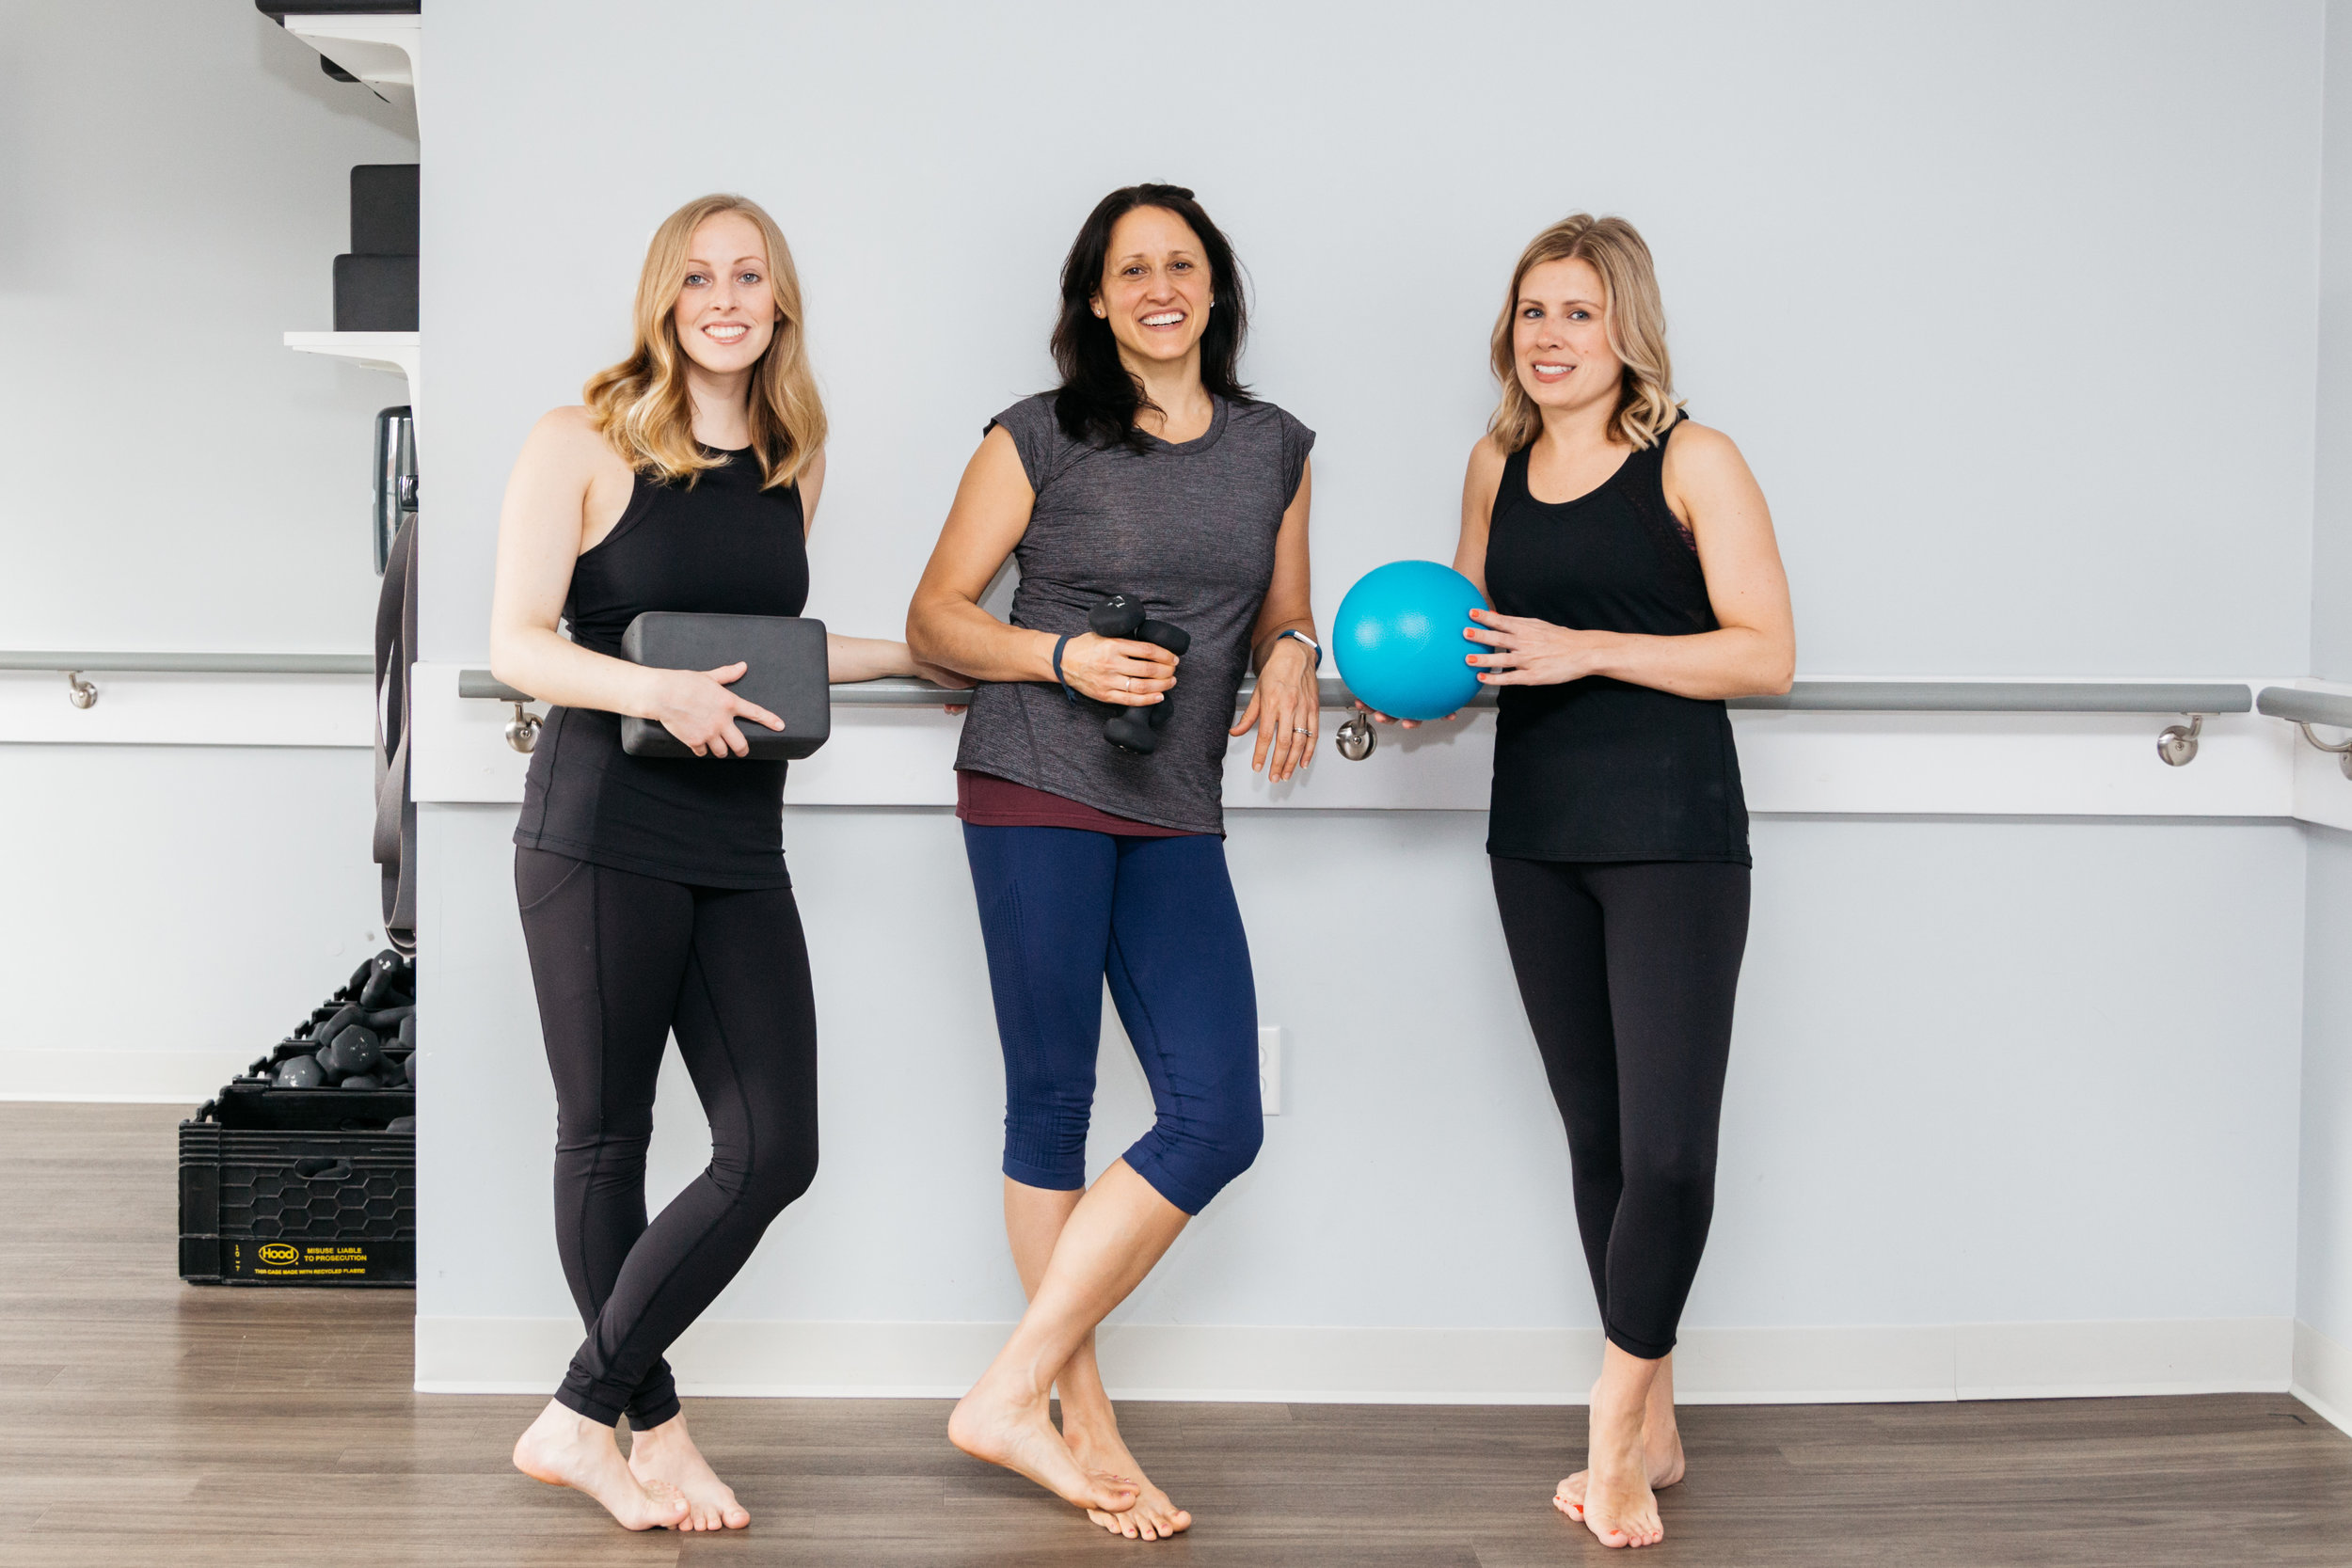 Power Barre Classes. Check out our method and classes!